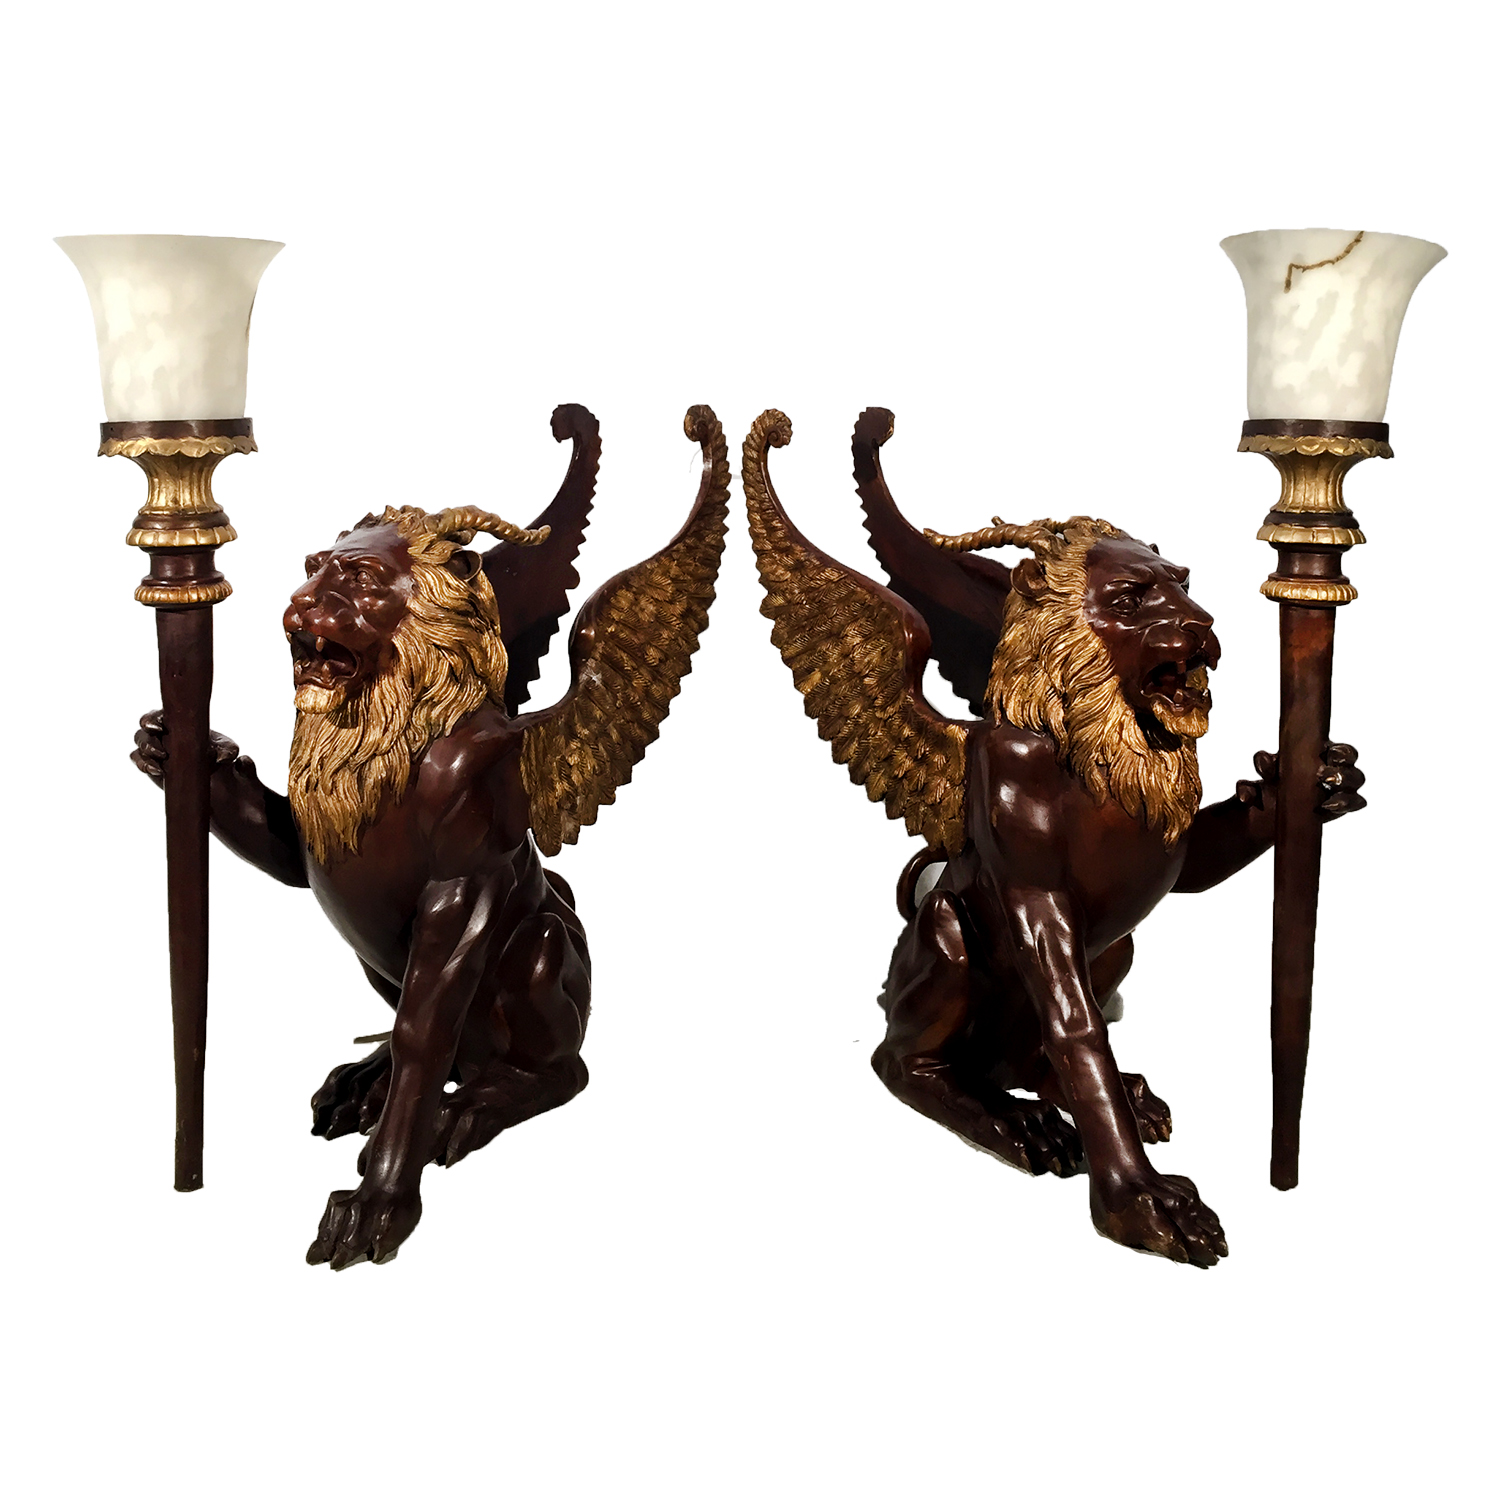 Bronze Winged Lion Lamps Sculpture Set Metropolitan